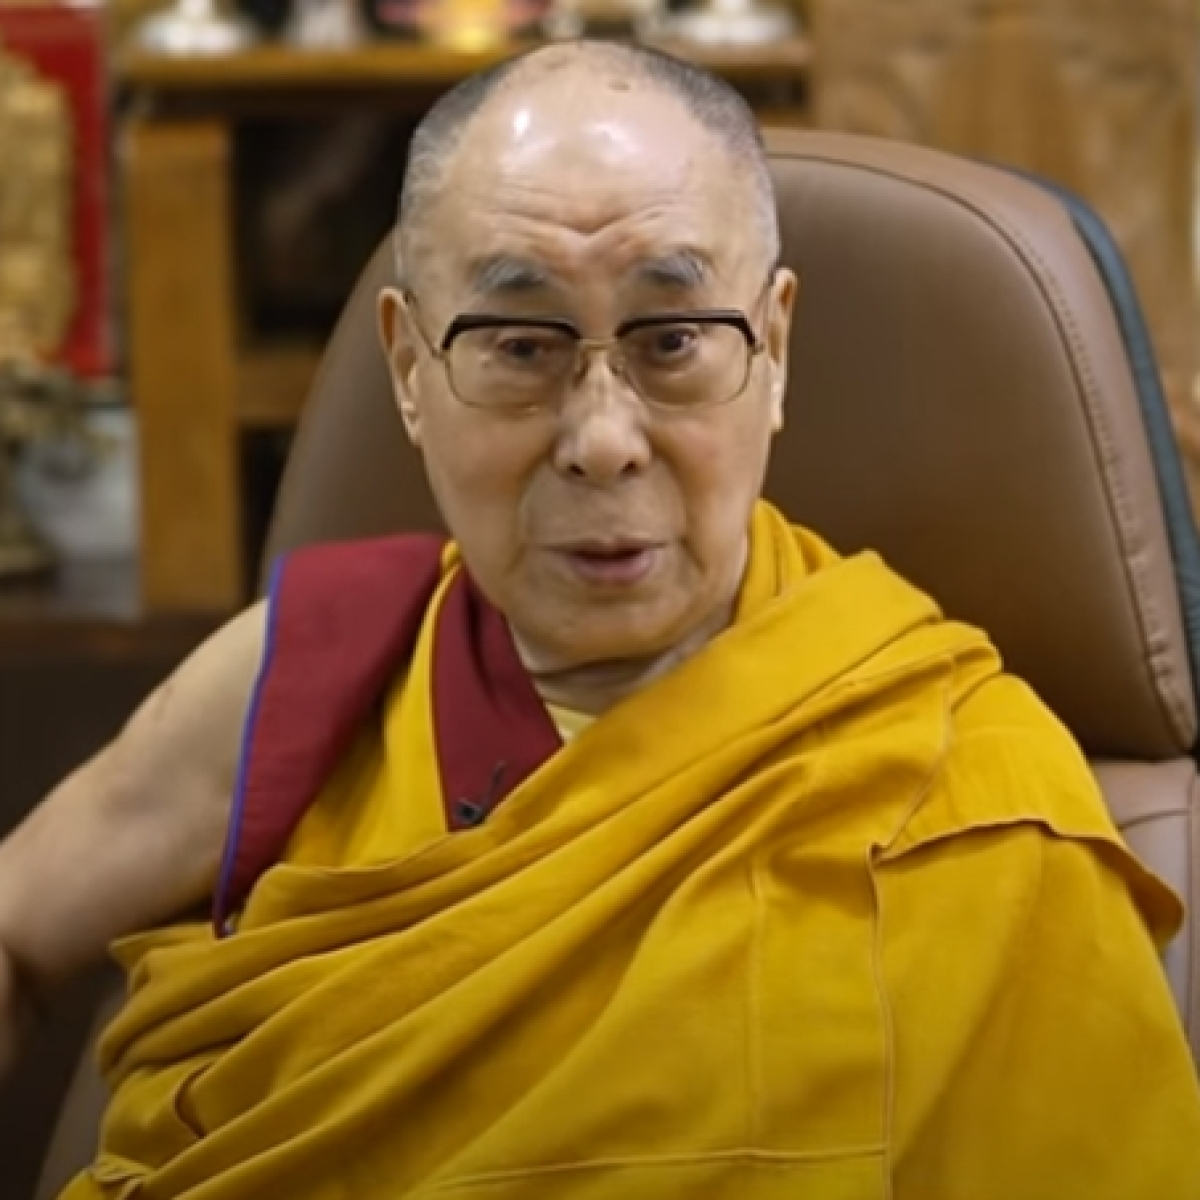 'Recite prayers from home': Dalai Lama's global appeal on 85th birthday